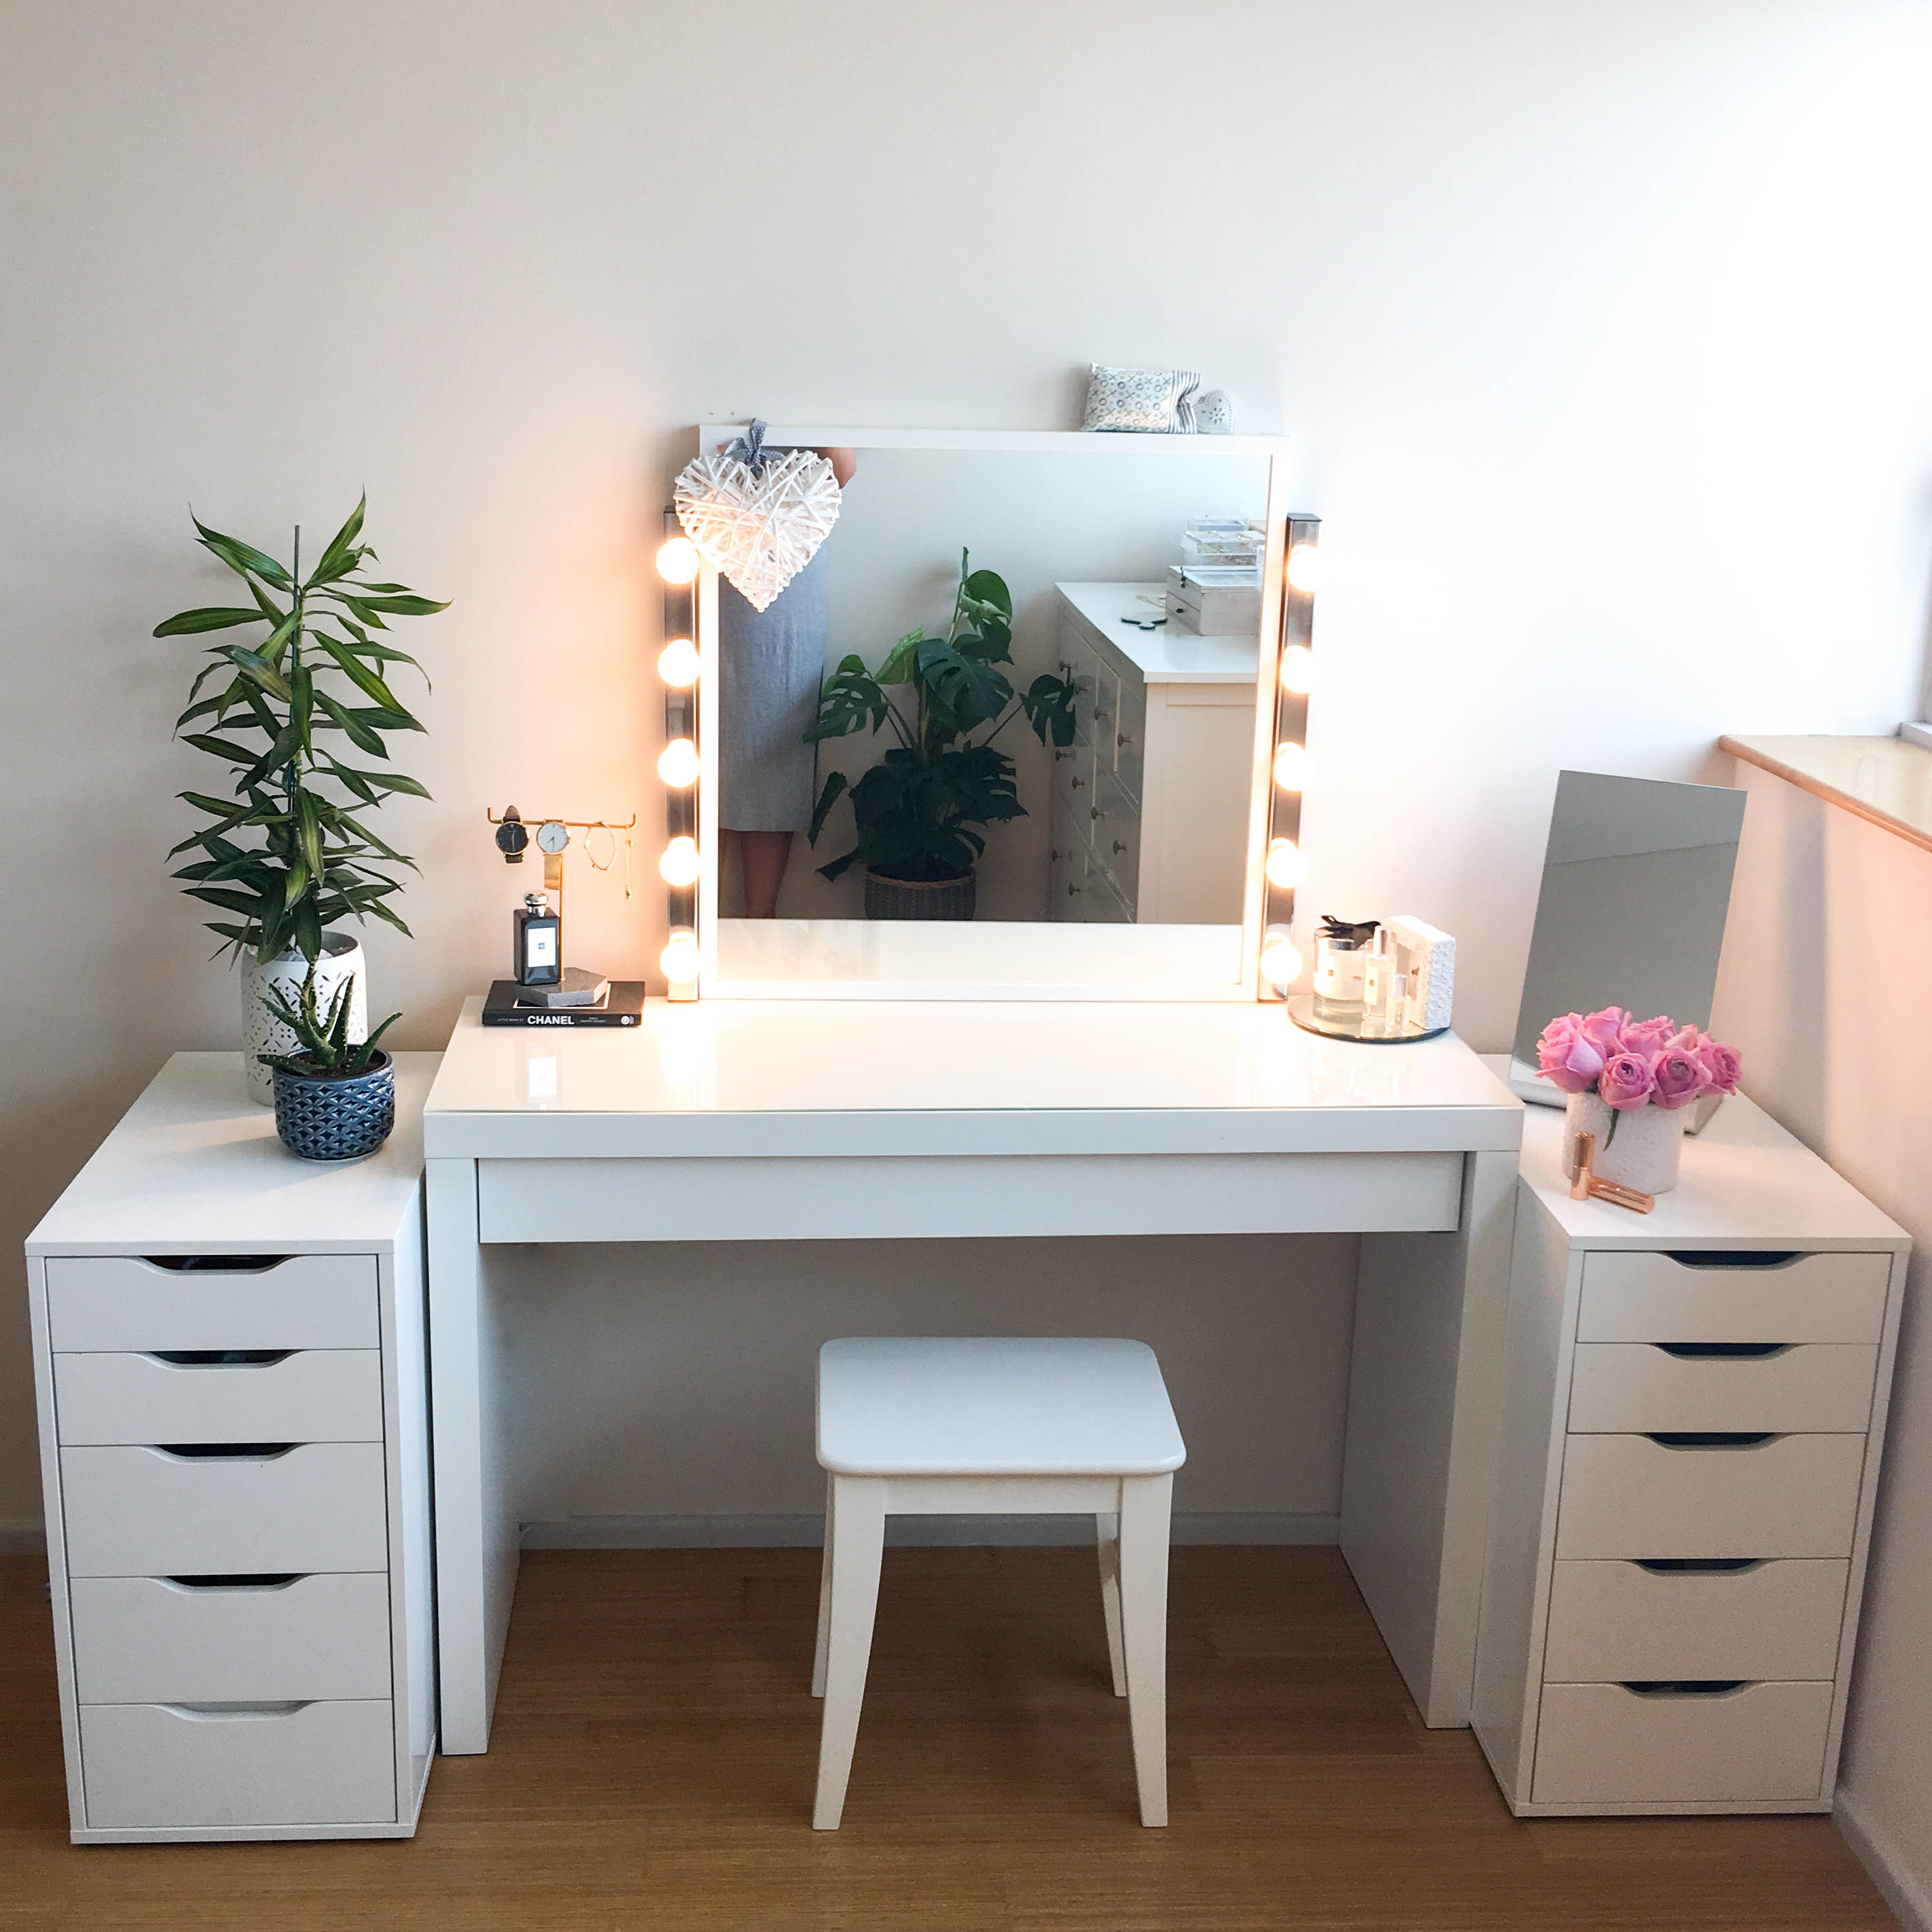 Being A Fan Of Makeup And Cosmetics For As Long As I Can Remember, I Always  Longed To Have The Perfect Dressing Table And U0027vanity Mirroru0027 U2013 The Ones  That ...